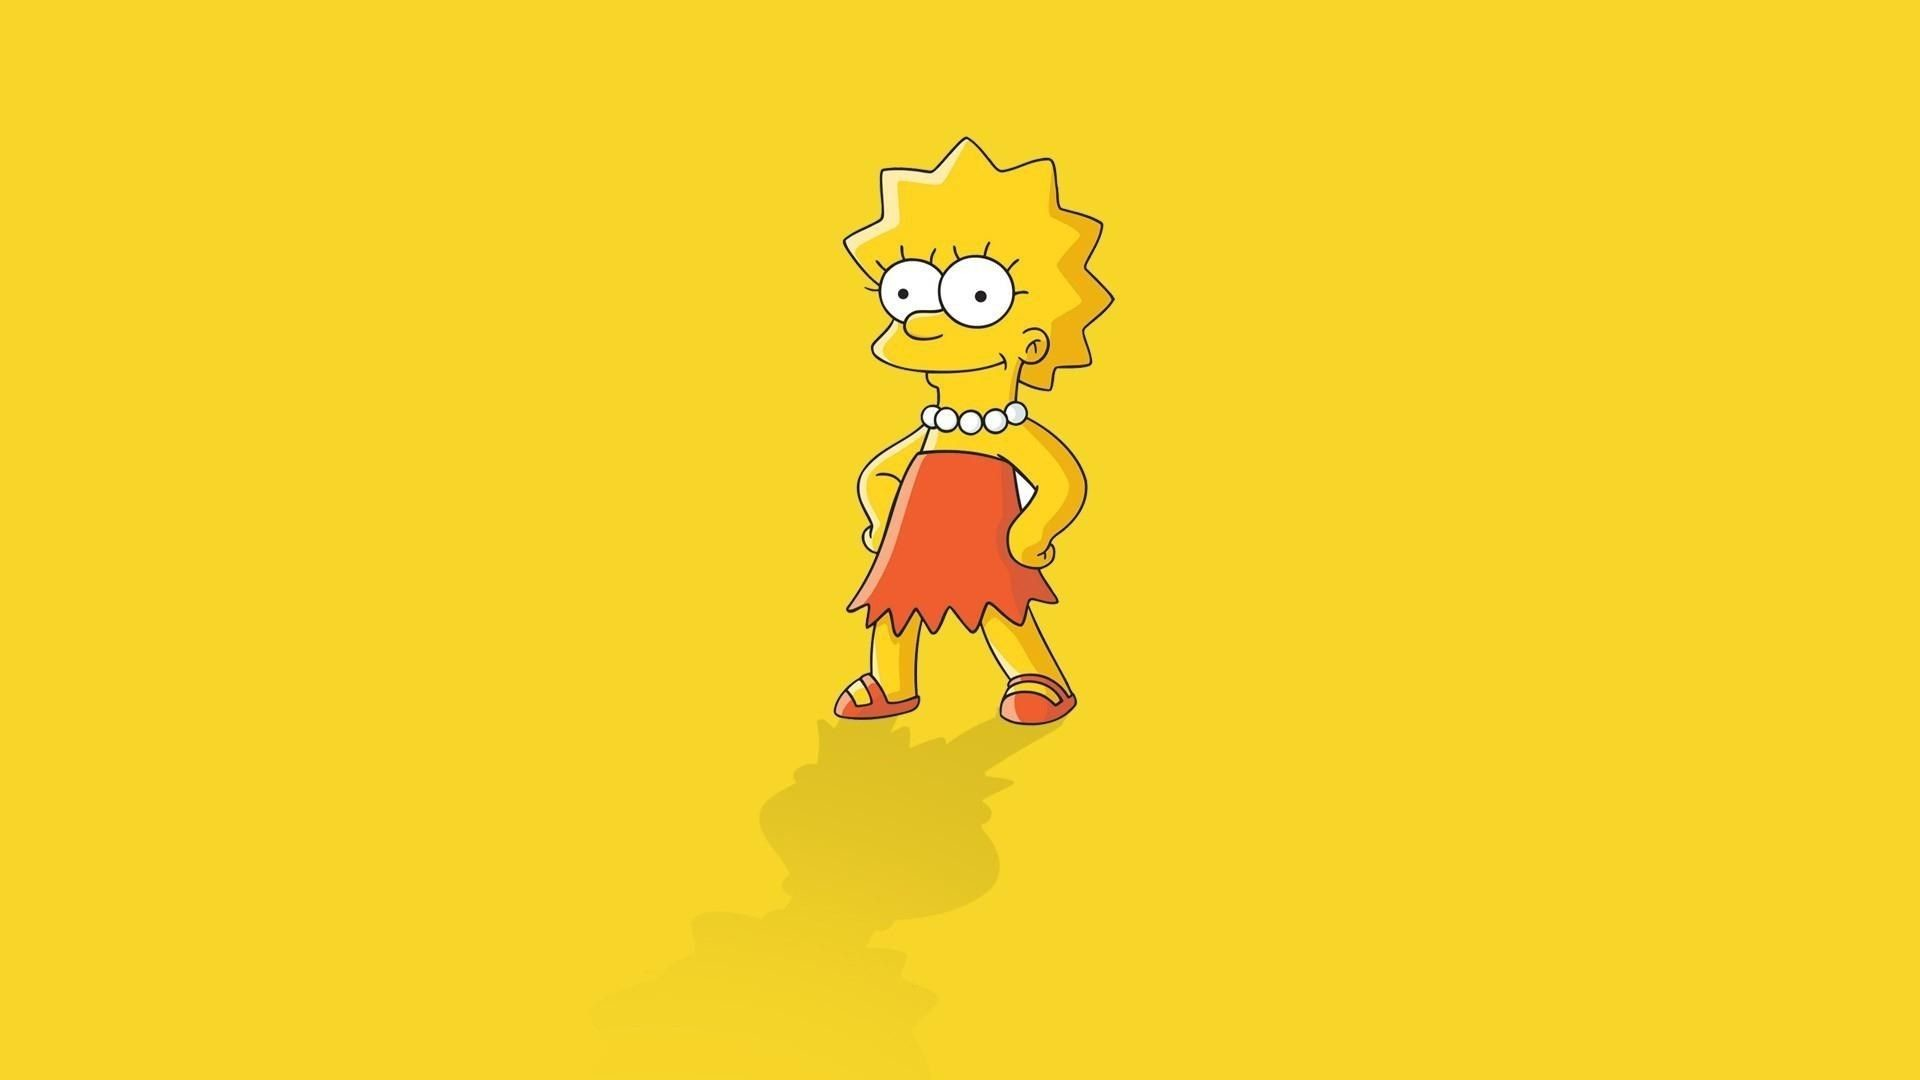 1920x1200 Download wallpaper: Bart Simpson, Simpsons, wallpapers, wallpapers 1920x1200